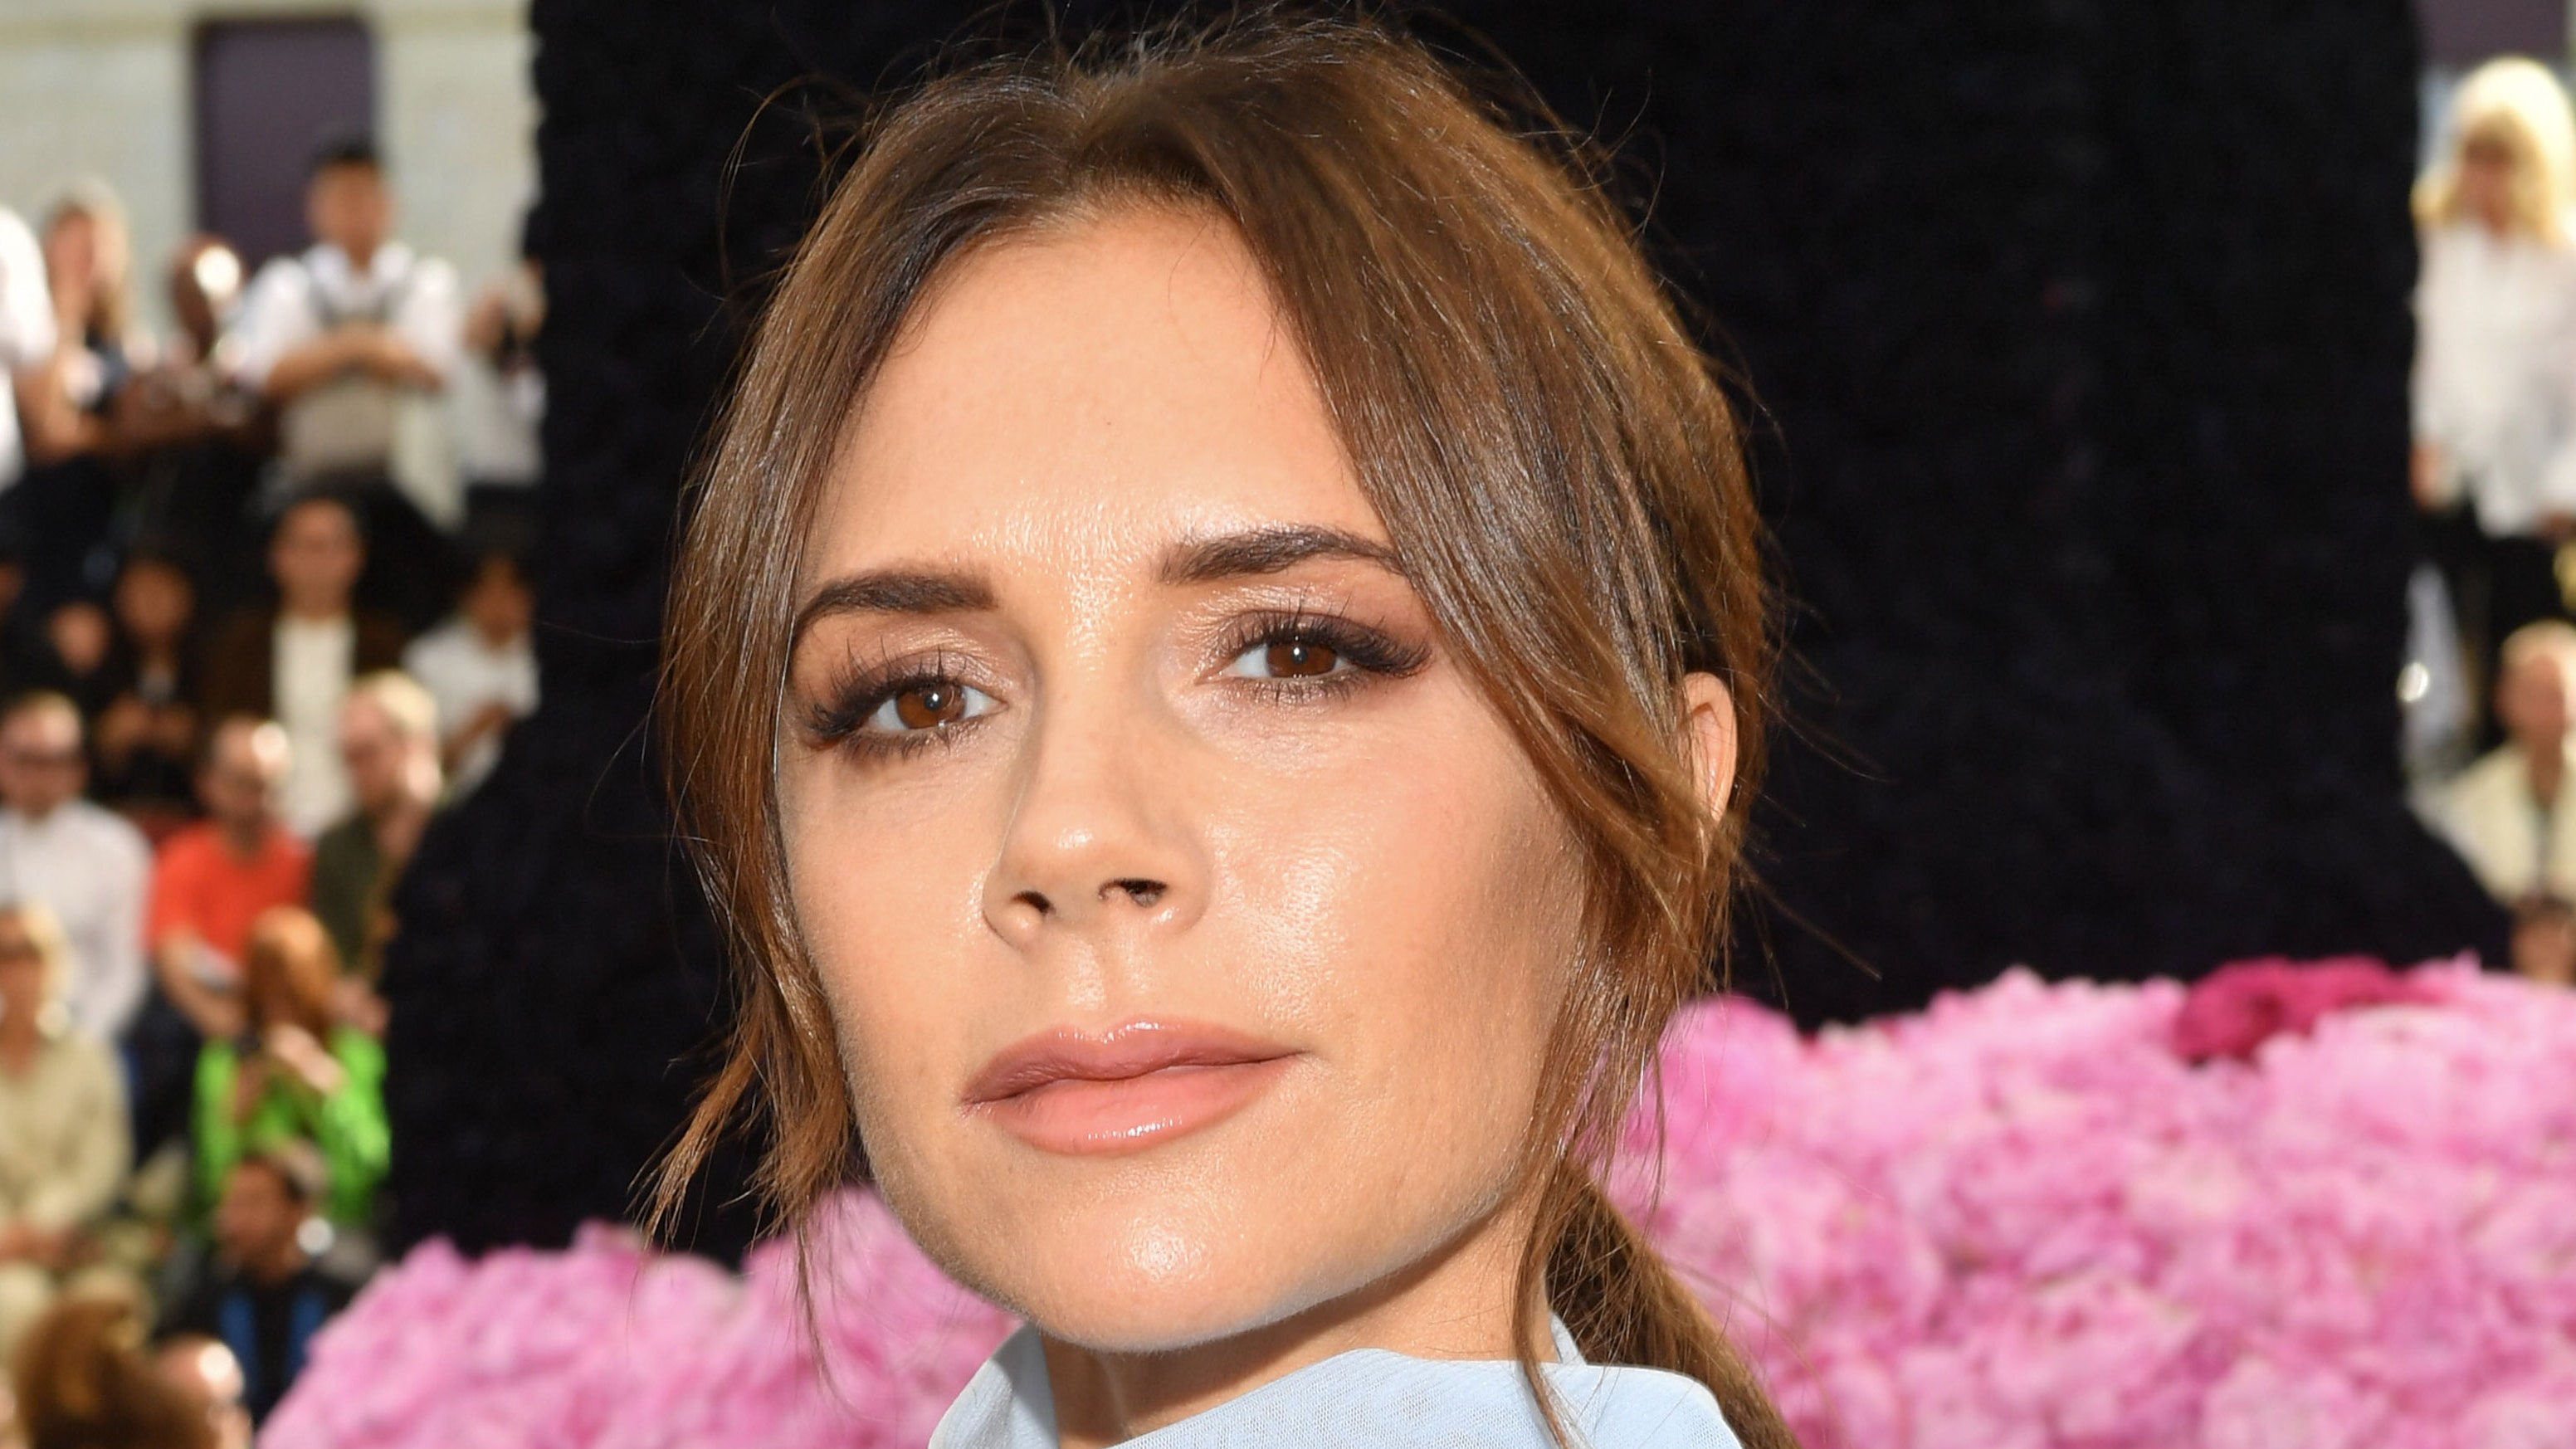 Victoria Beckham's Festive Red Lip Look Is Putting Us in the Holiday Spirit